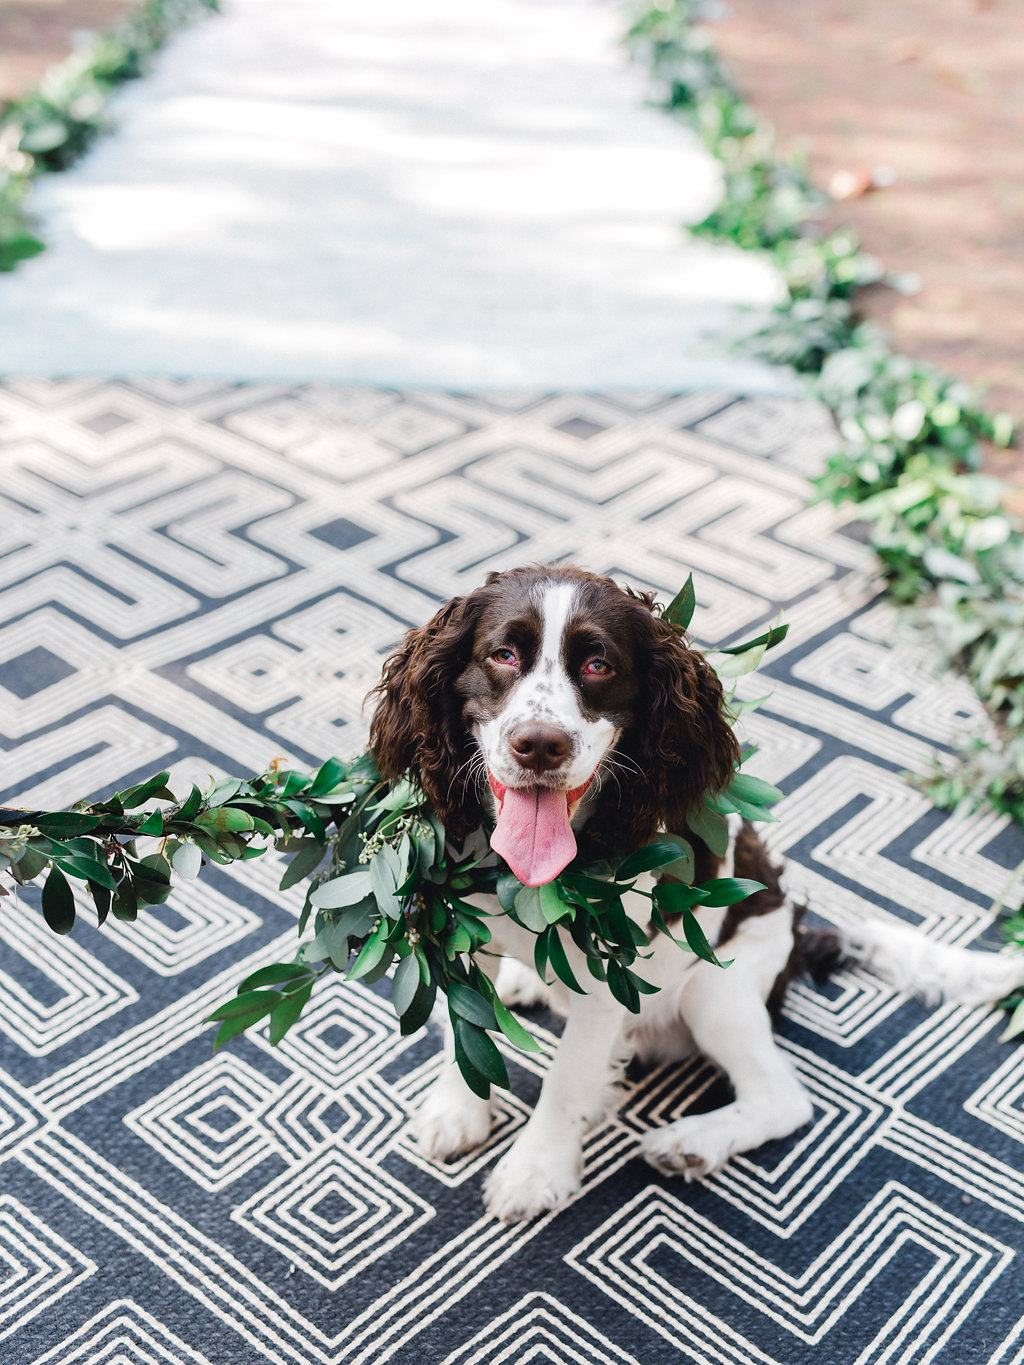 t-rex-the-dog-ringbearer-dog-at-wedding-dog-collar-dog-flower-crown-ivory-and-beau-savannah-florist-savannah-wedding-florist-cutest-dog-in-the-world-springer-spaniel-greenery-collar.JPG